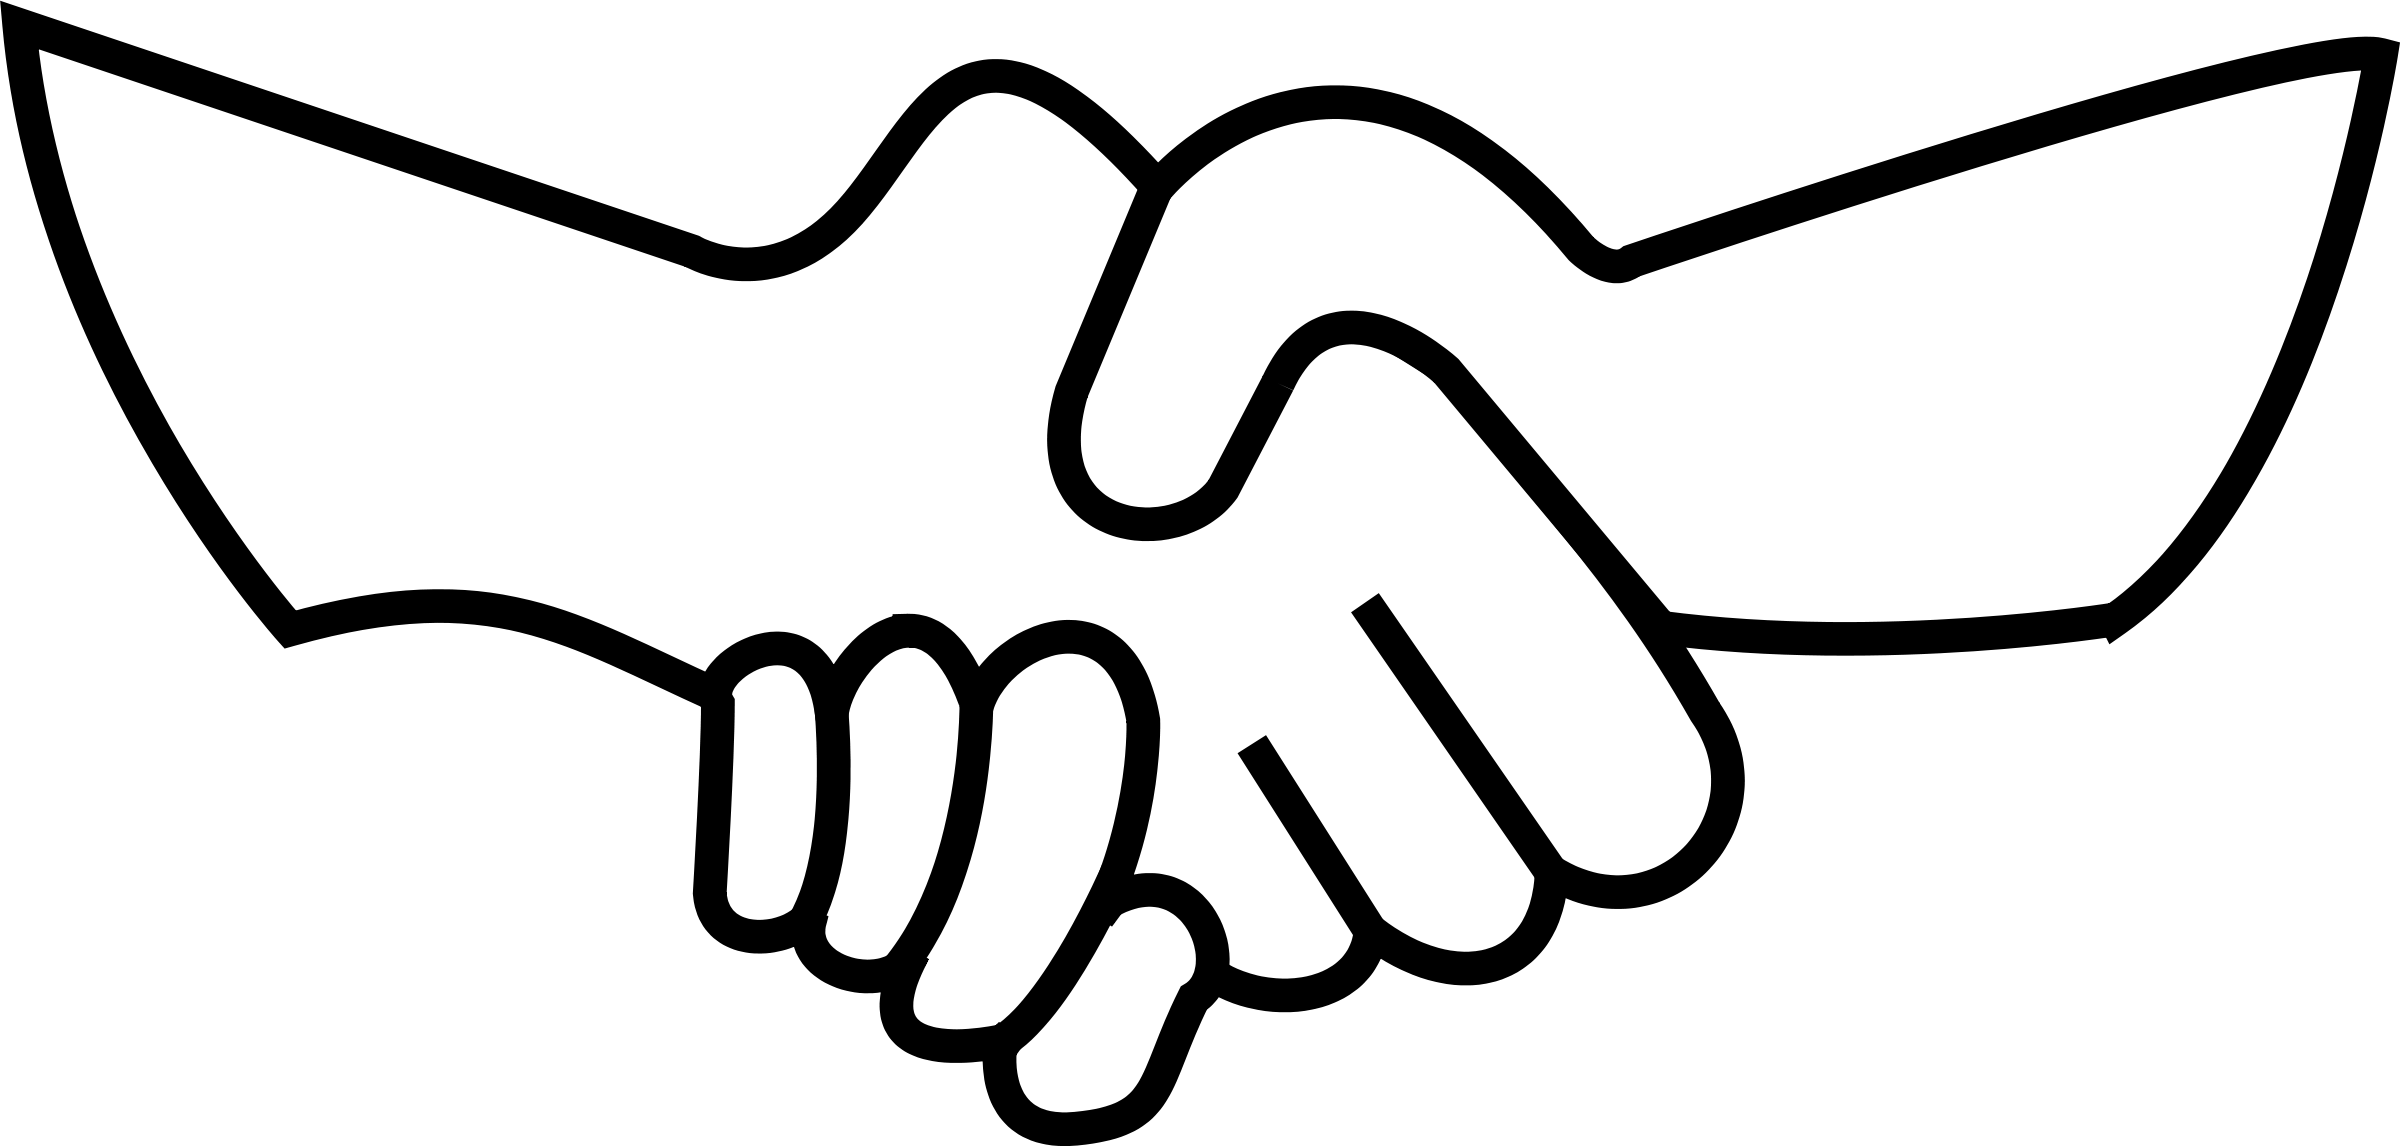 2400x1147 Holding Hands Clipart In Black And White 101 Clip Art